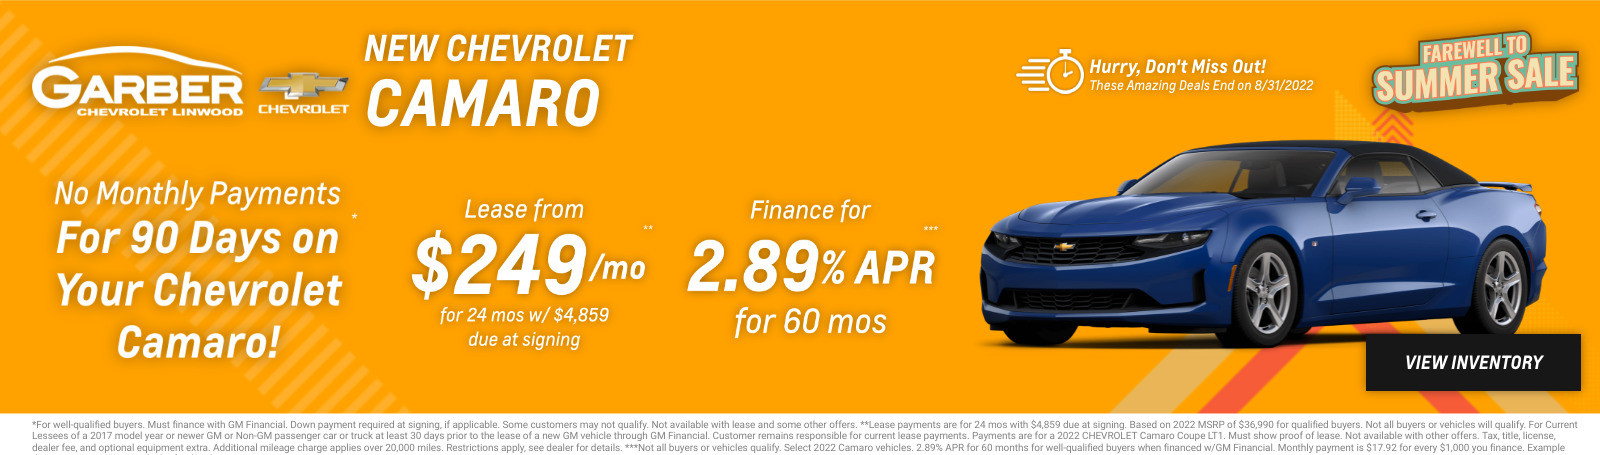 New Chevrolet Camaro Current Deals and Offers in Bay City, MI